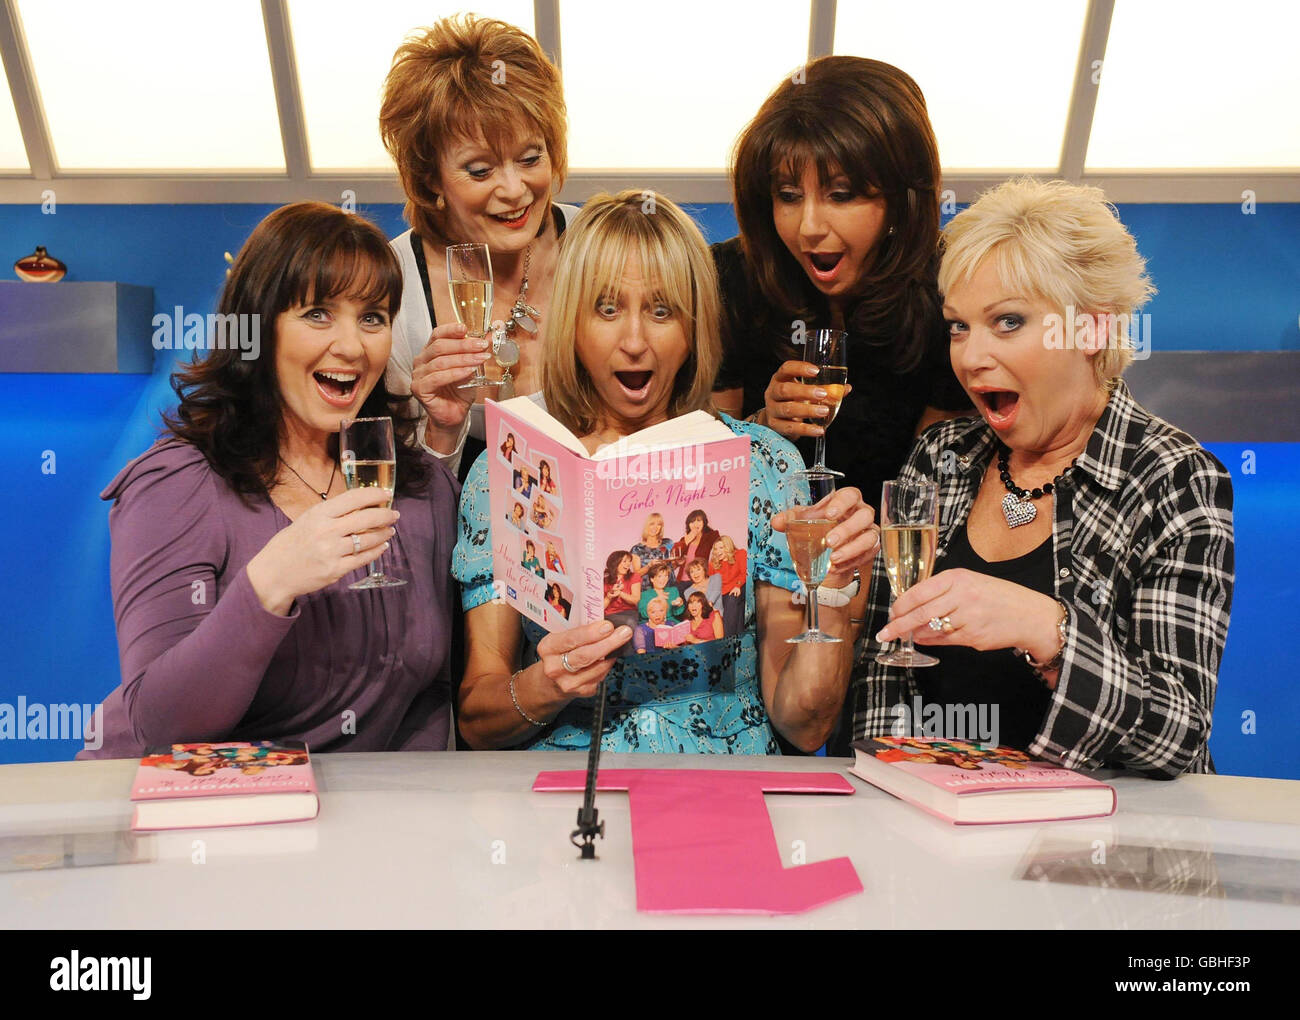 Loose Women promote their book - London - Stock Image